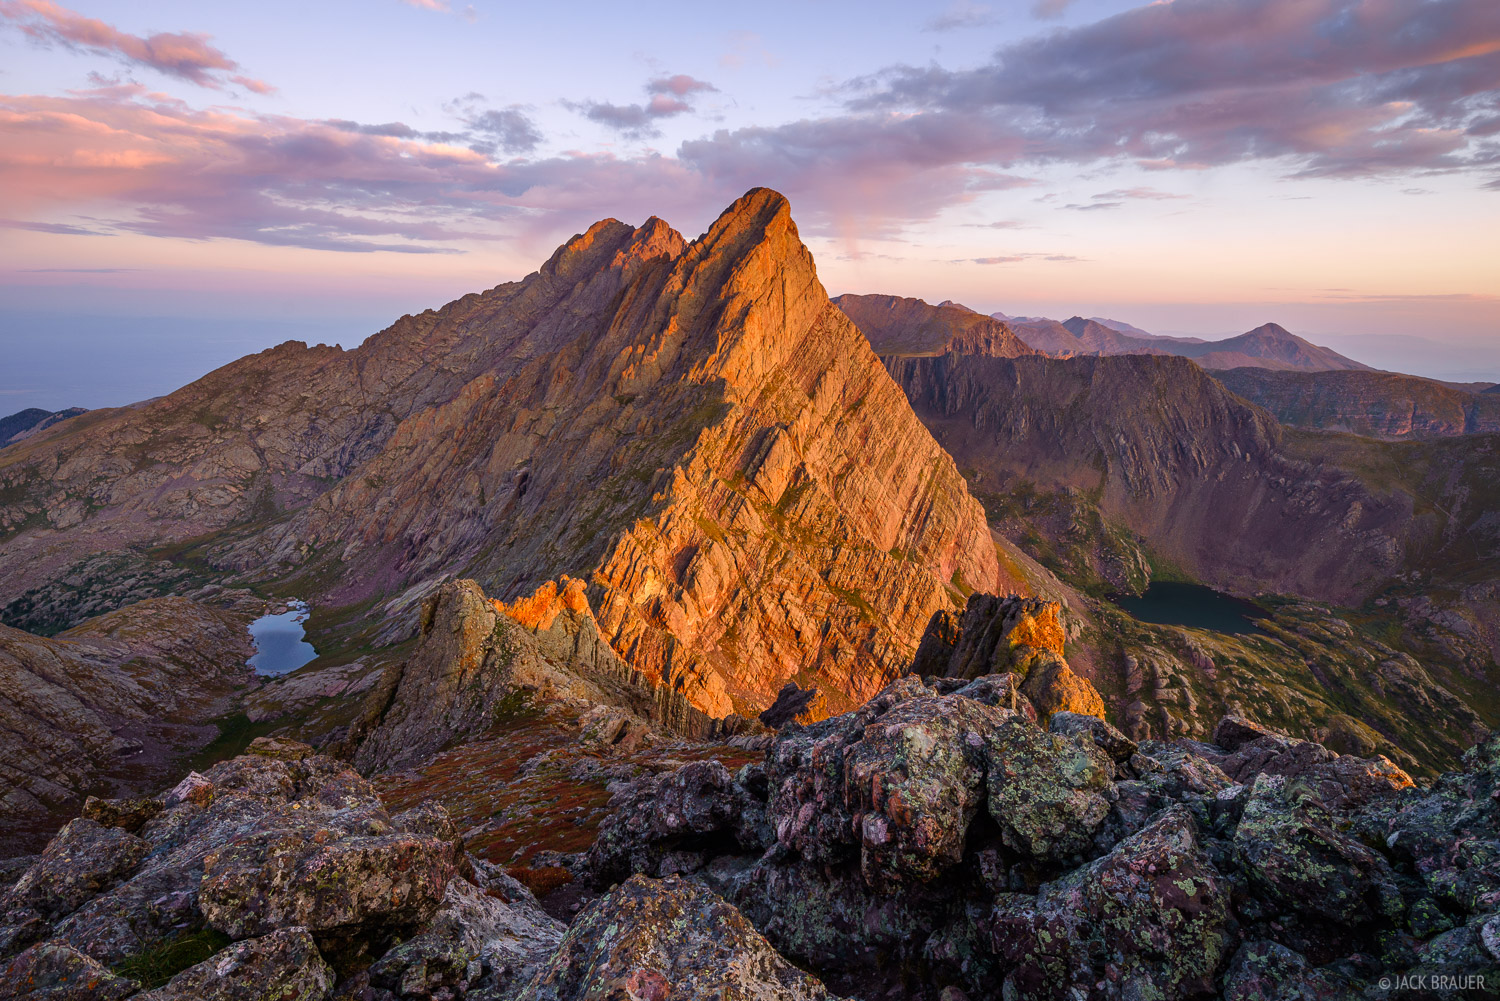 Broken Hand Peak, Colorado, Crestone Needle, Sangre de Cristos, 14er, sunrise, Sangre de Cristo Wilderness, photo